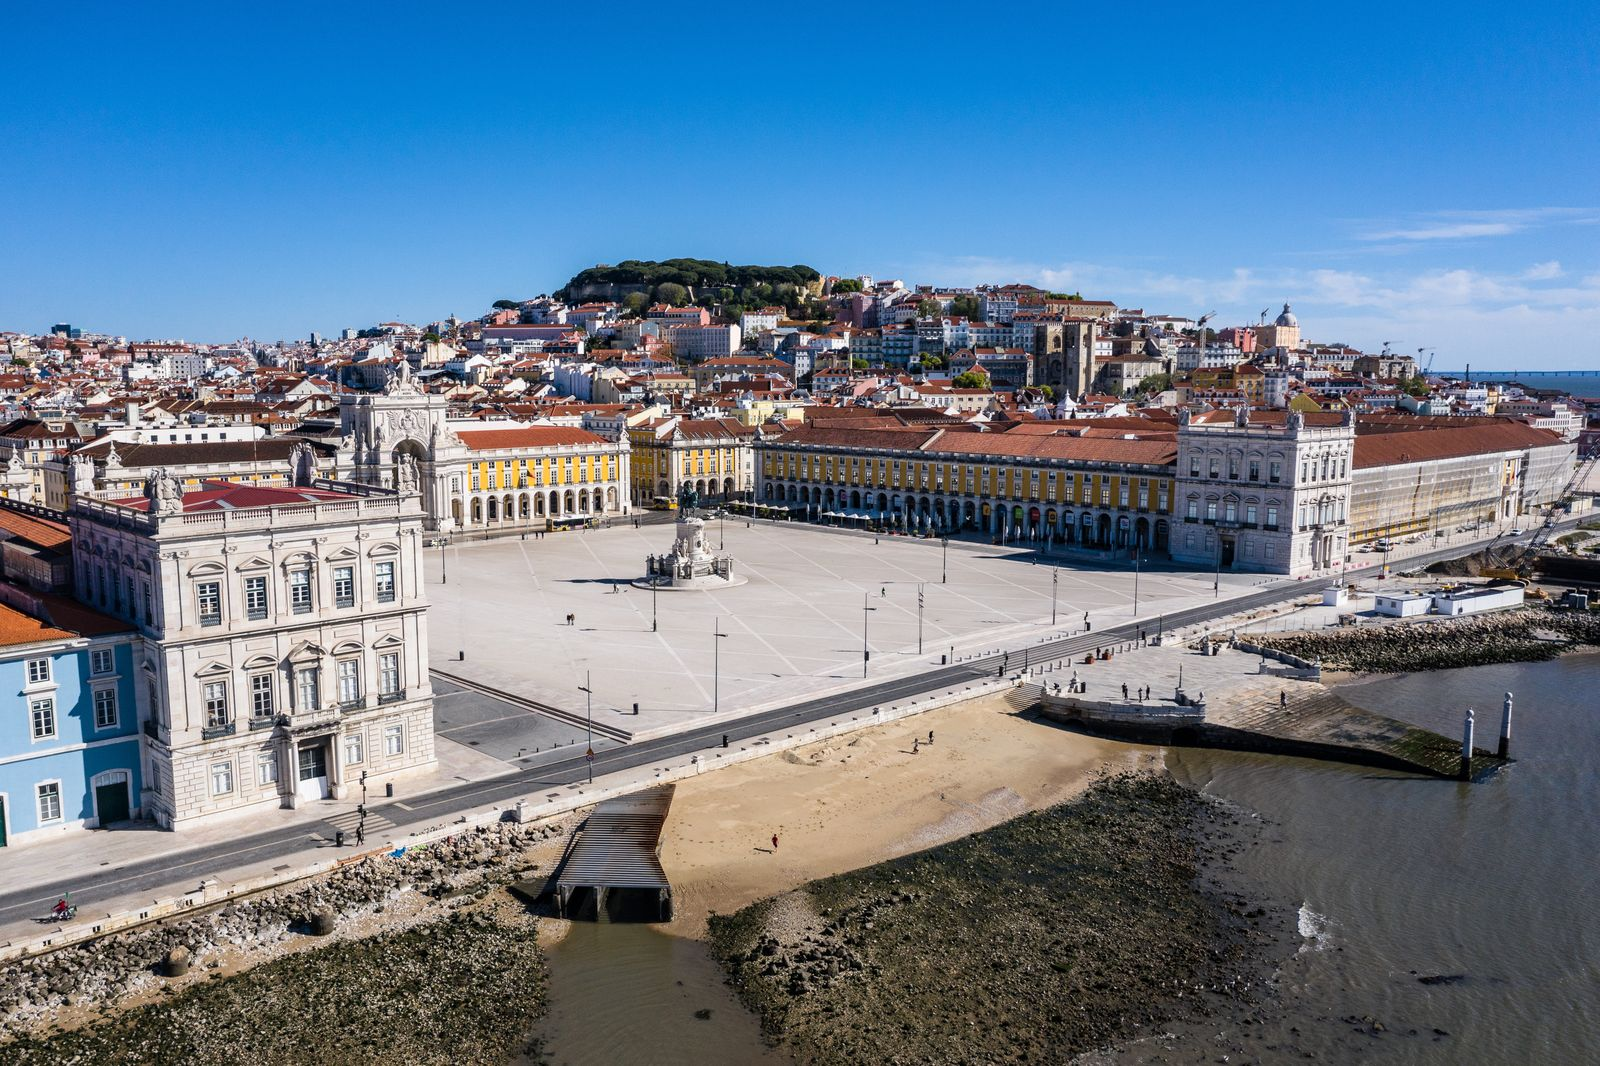 (EDITORS NOTE: Image taken with a drone) Praca do